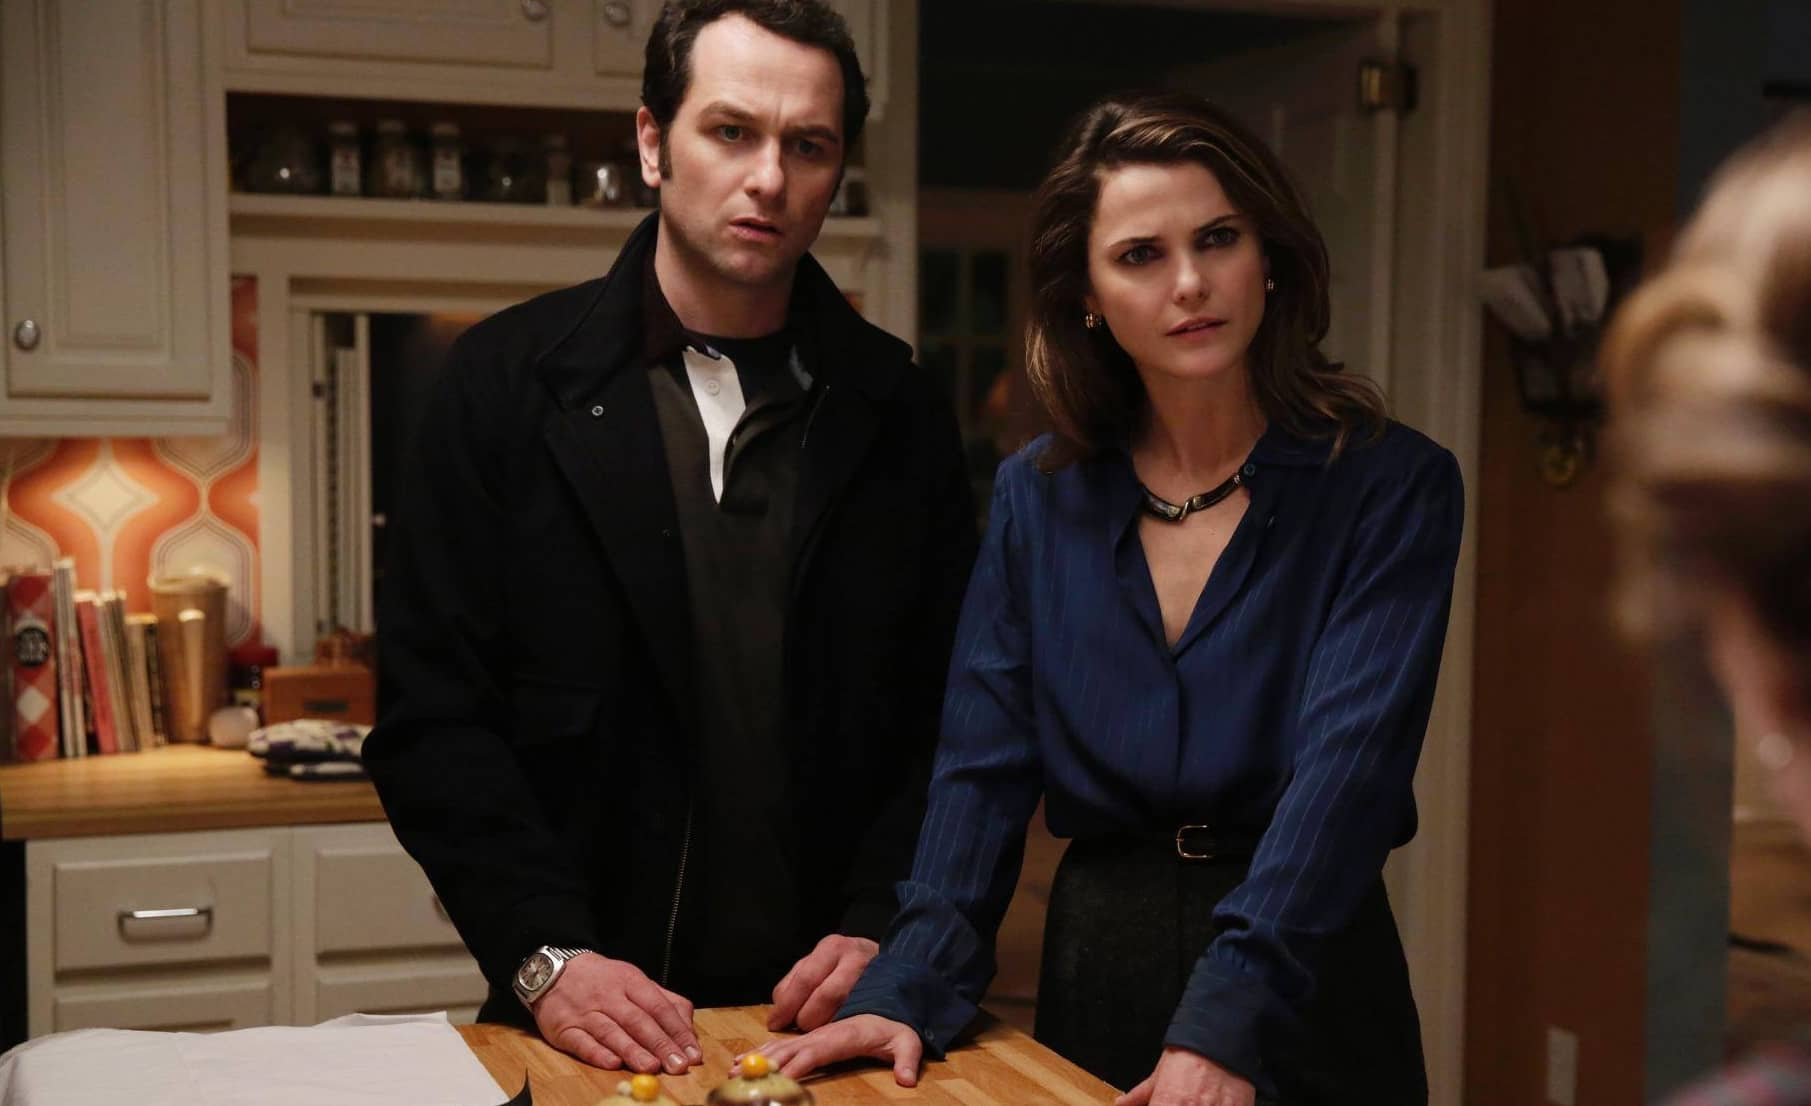 Internal and External Conflict - The Americans